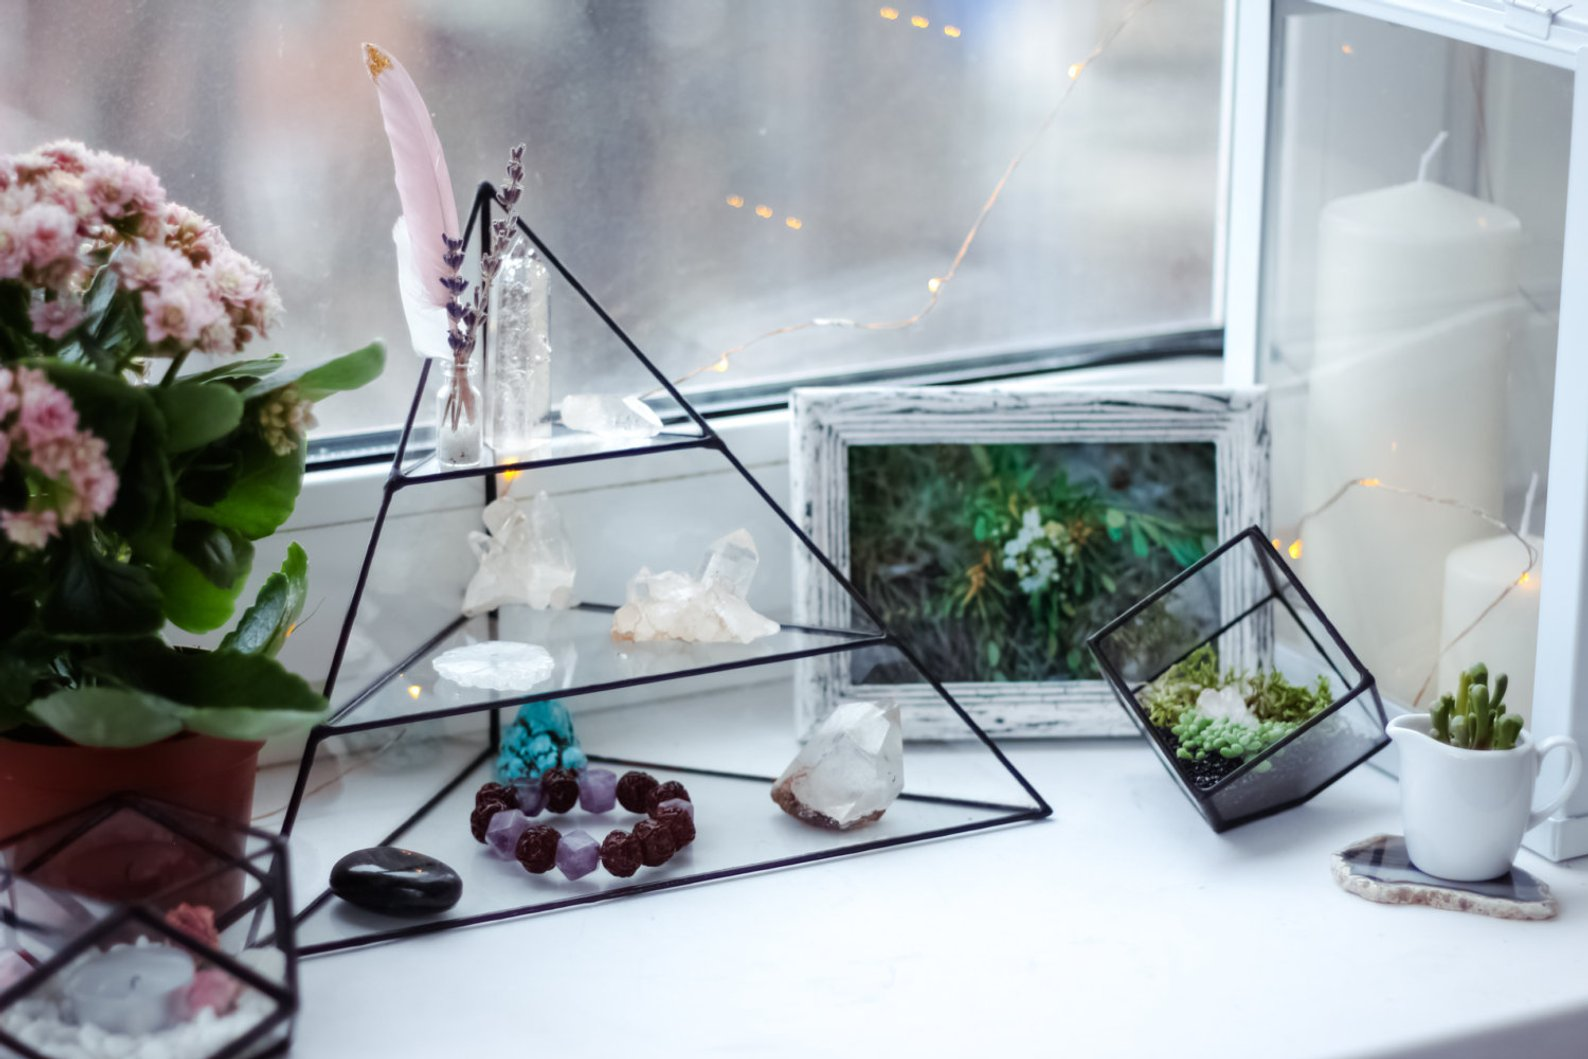 Pyramid Jewelry Rack and Terrariums By Stereometric Design